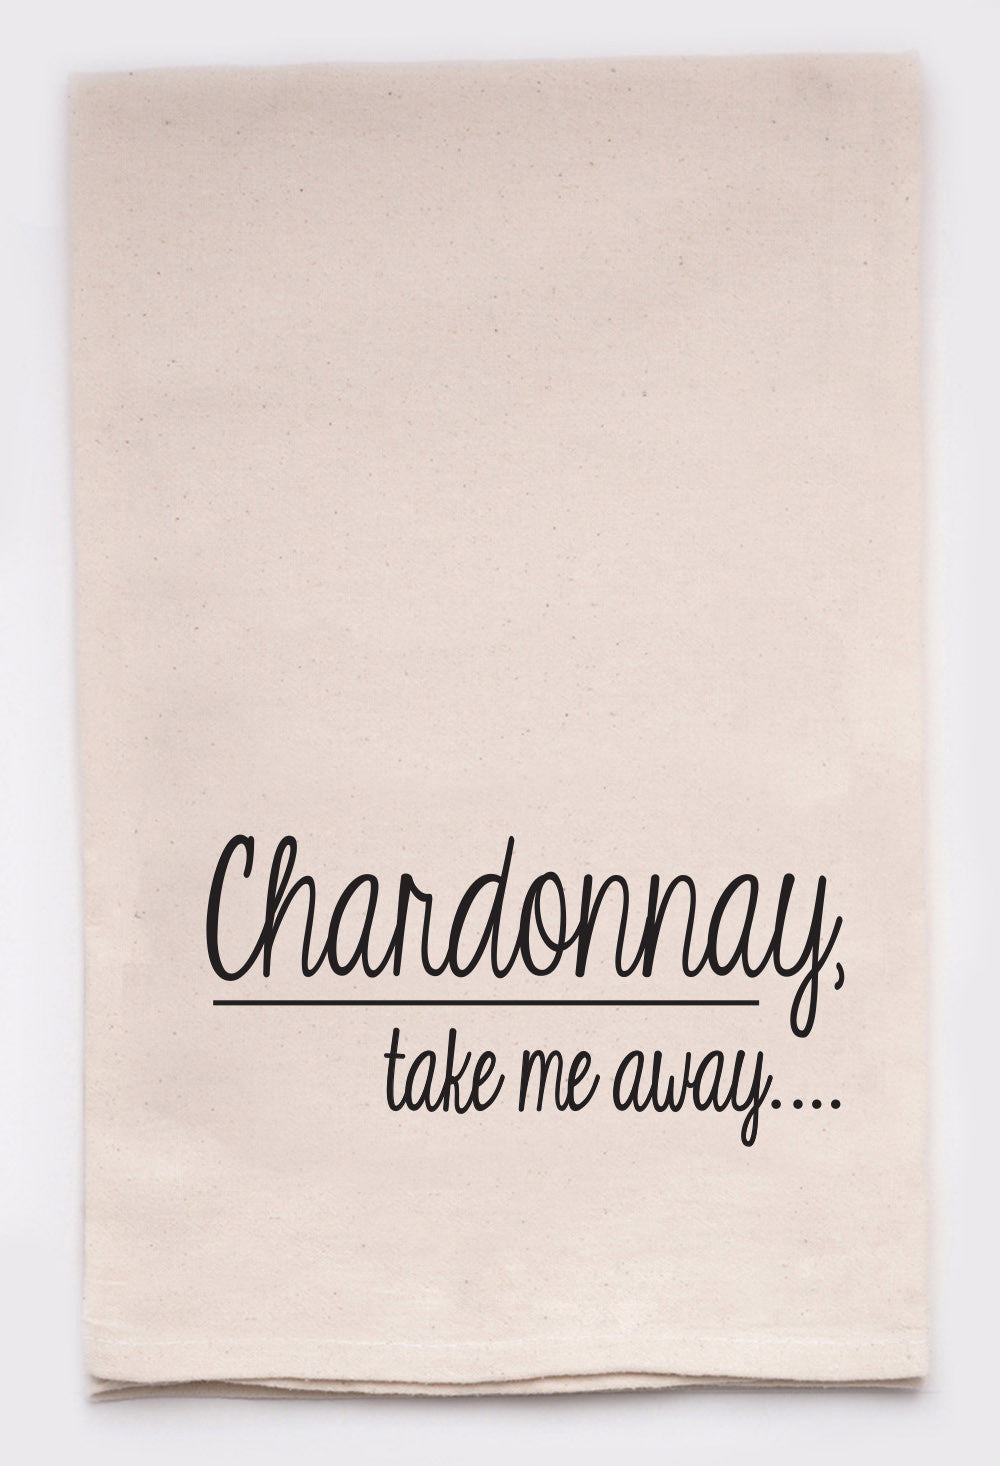 chardonnay, take me away....